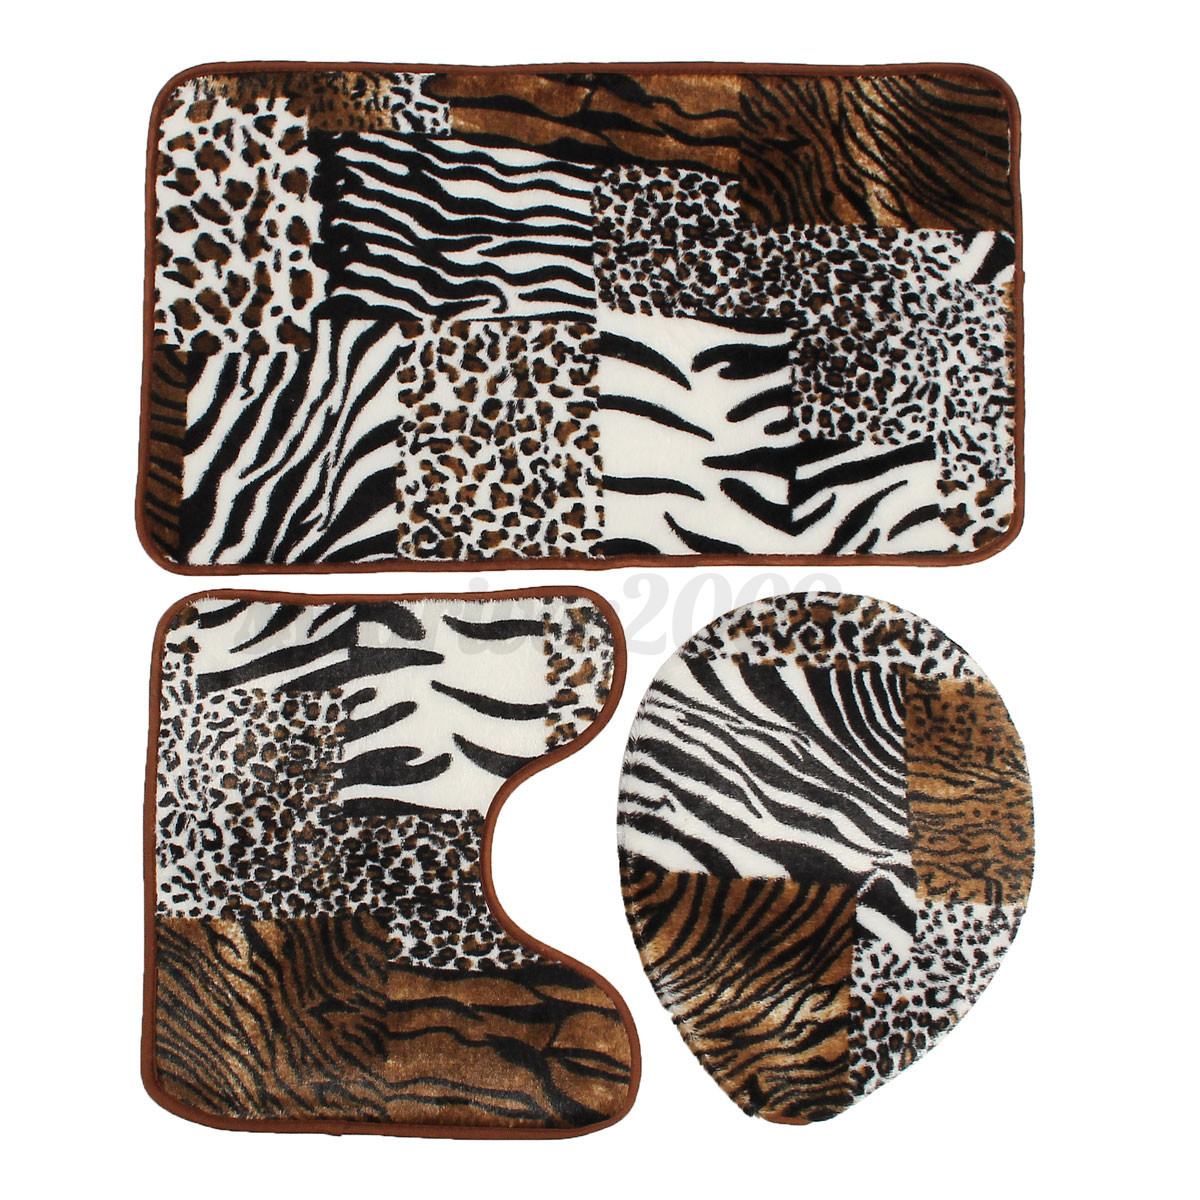 zebra leopard print set 3 toilet seat cover bathroom mat rug lid toilet cover